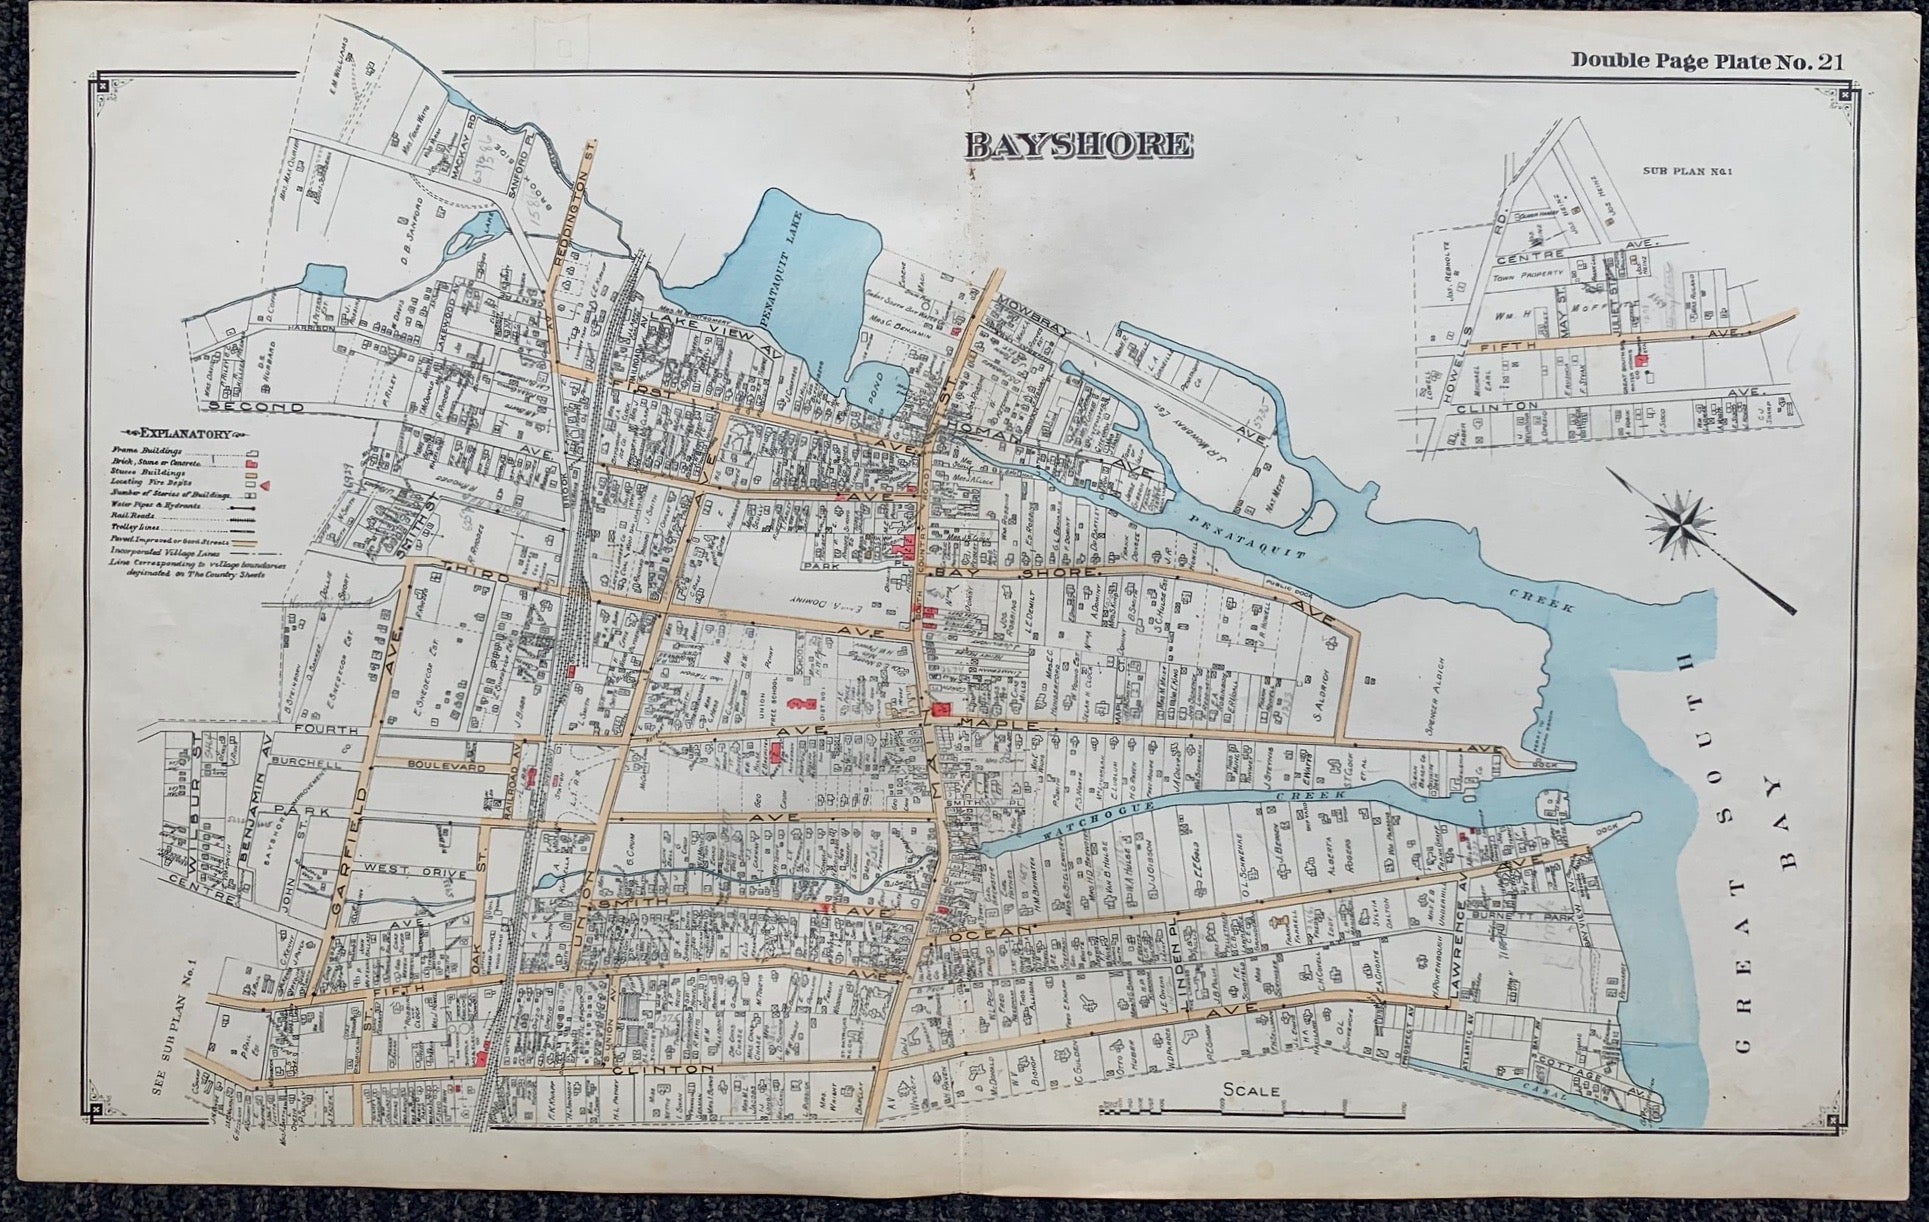 Long Island Index Map No.2 - Plate 21 Bayshore